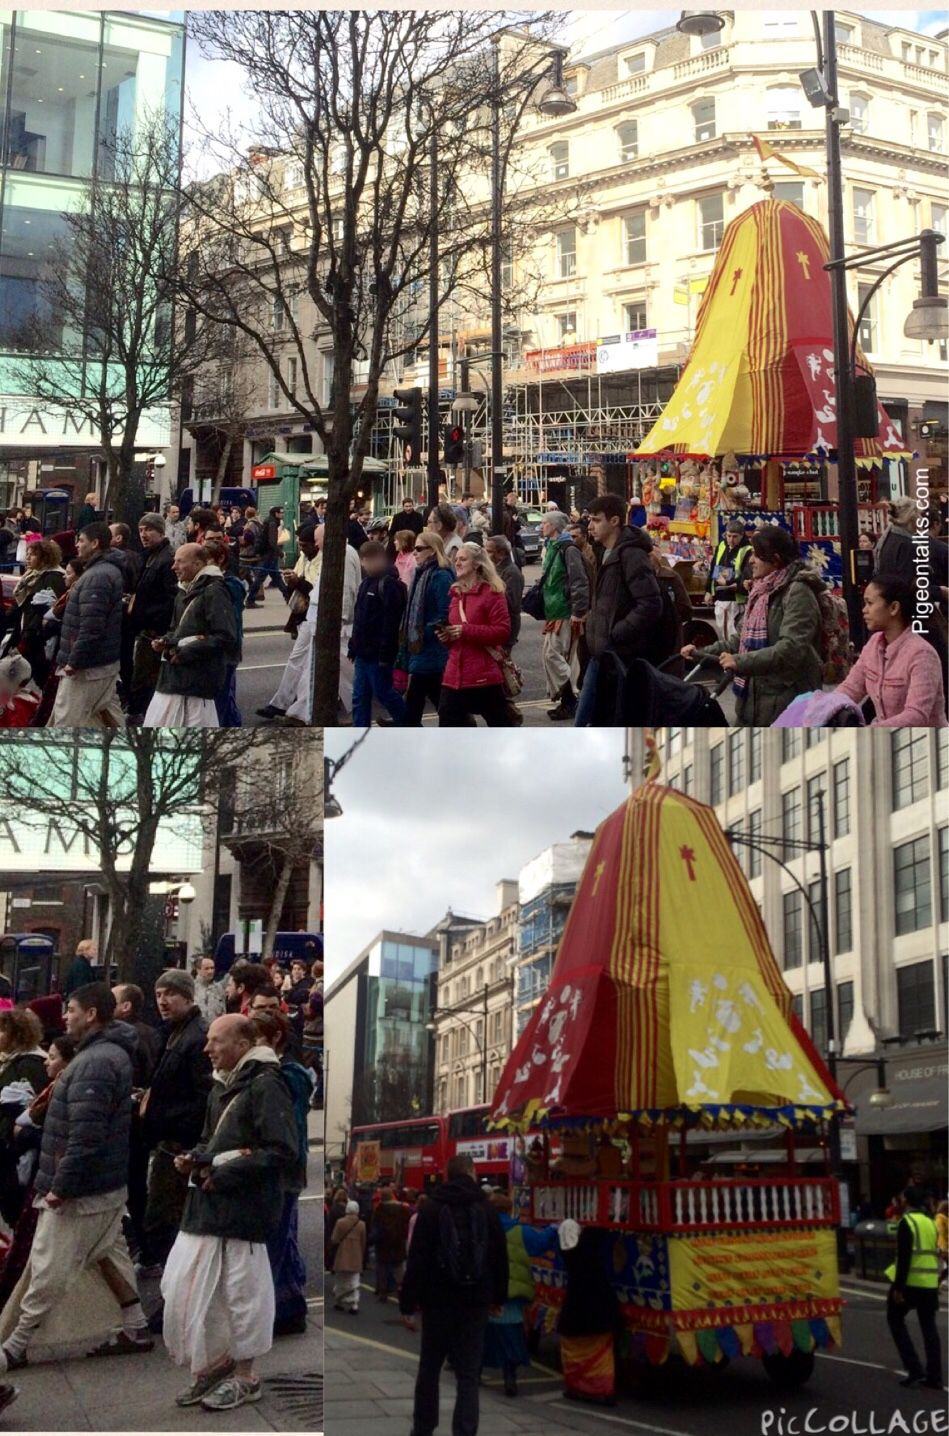 I love it when Harikrishnas take over Oxford Street, they're always so happy | #london #oxfordstreet #Harikrishna #pigeontalks